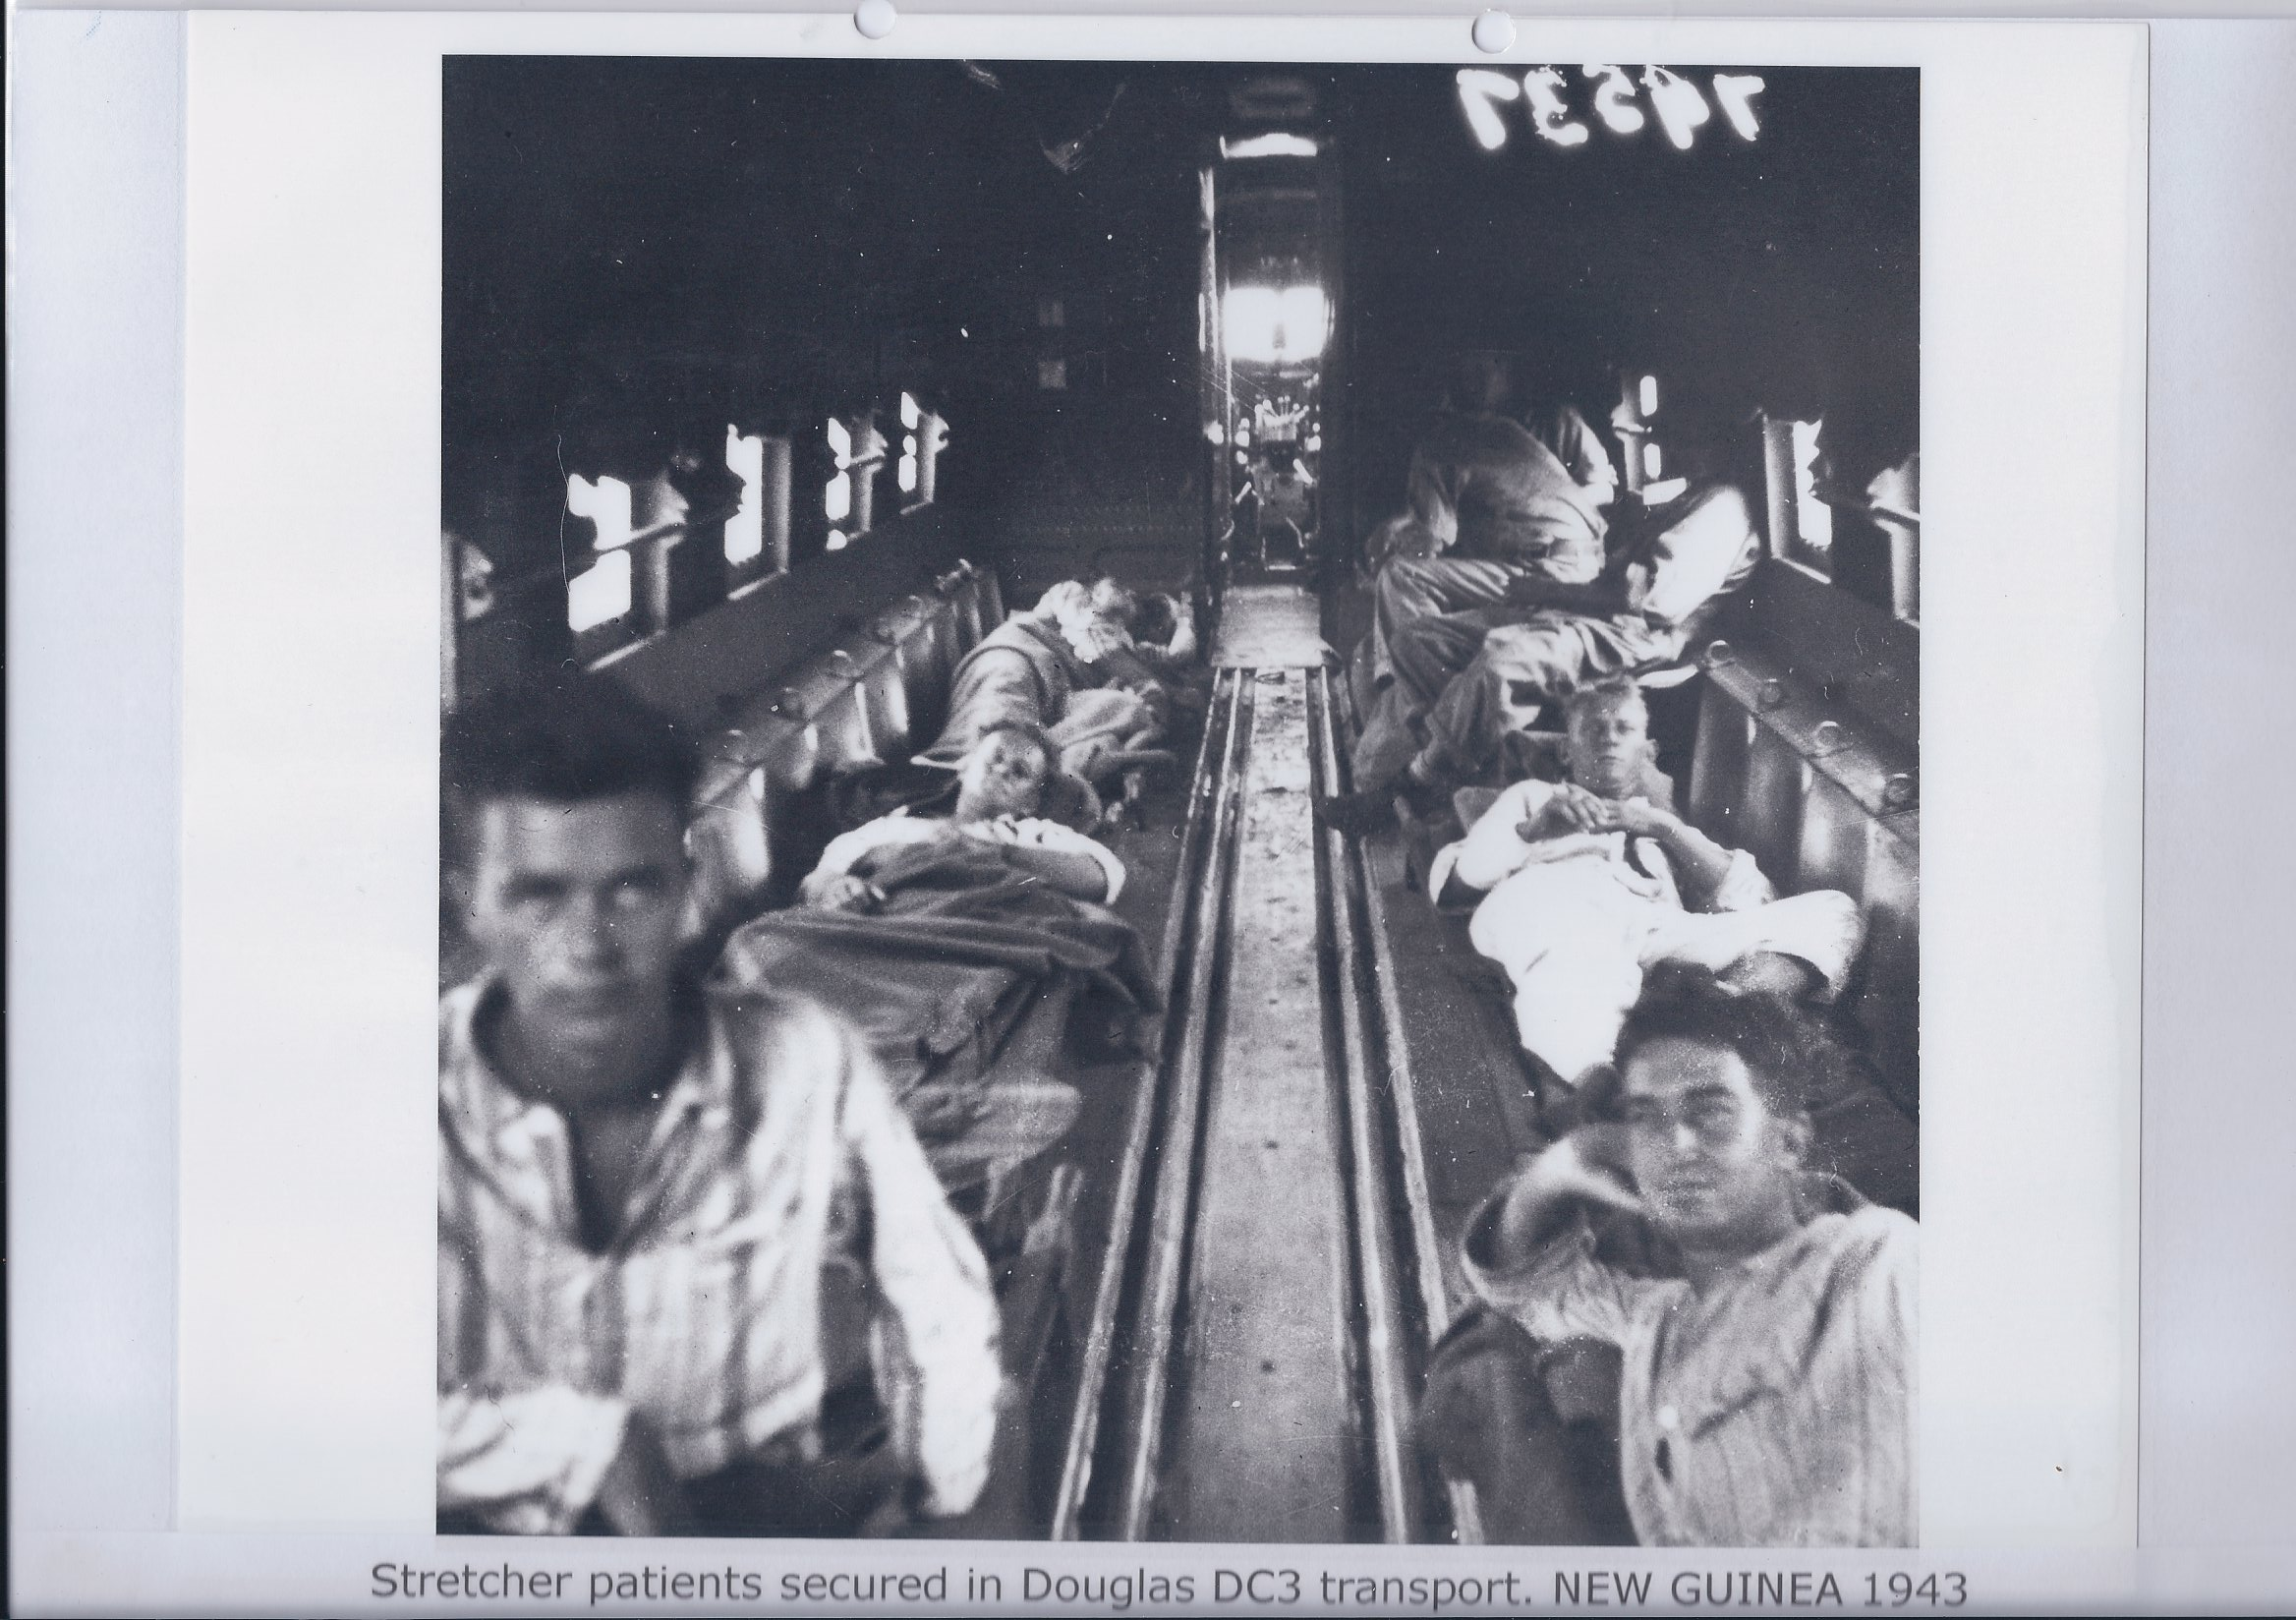 Stretcher patients secured in Douglas DC3 transport. NEW GUINEA 1943